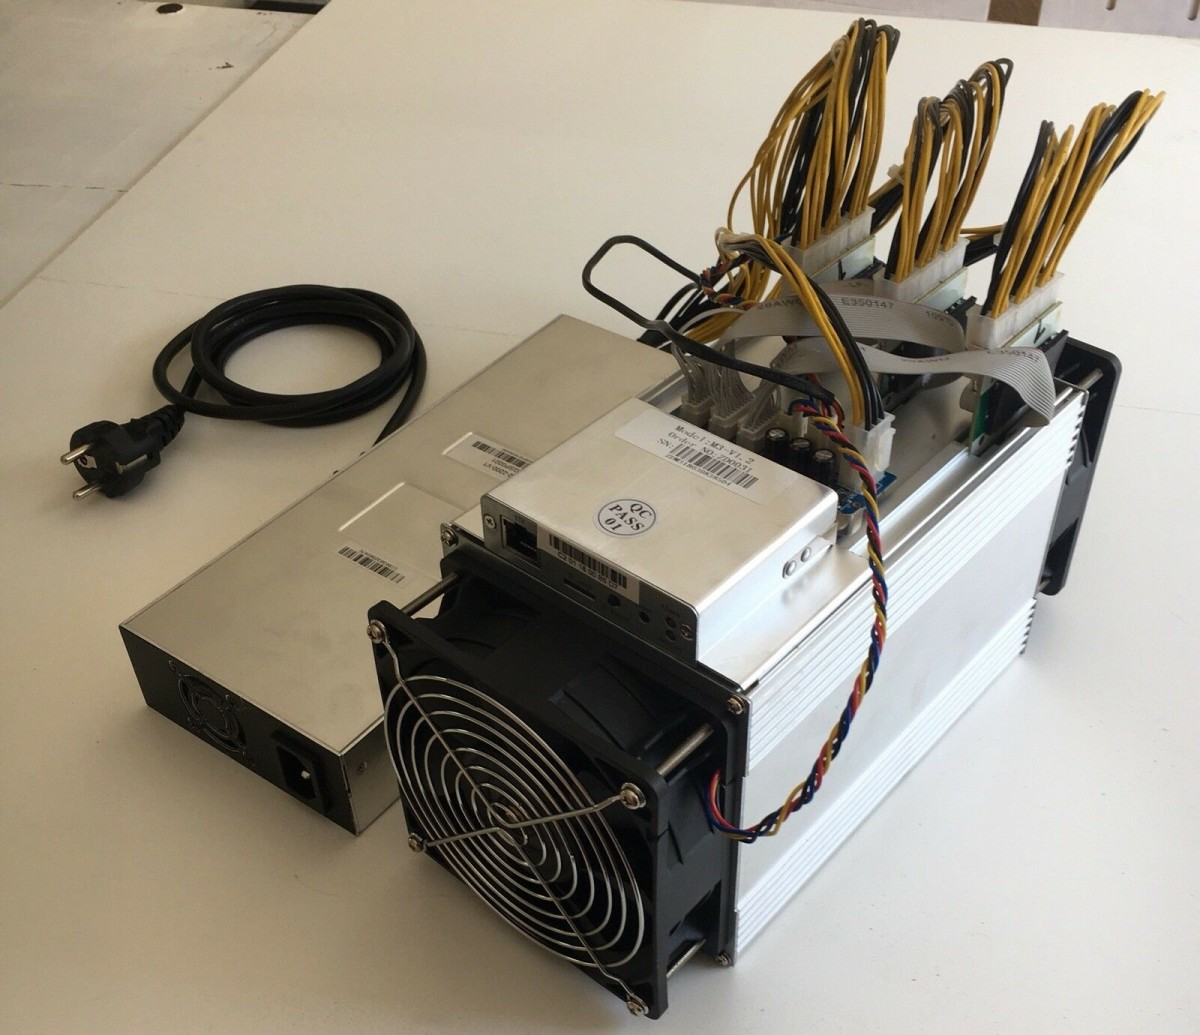 FOR SALE: New Antminer S9 13 5TH / s with PSU Factory Sealed